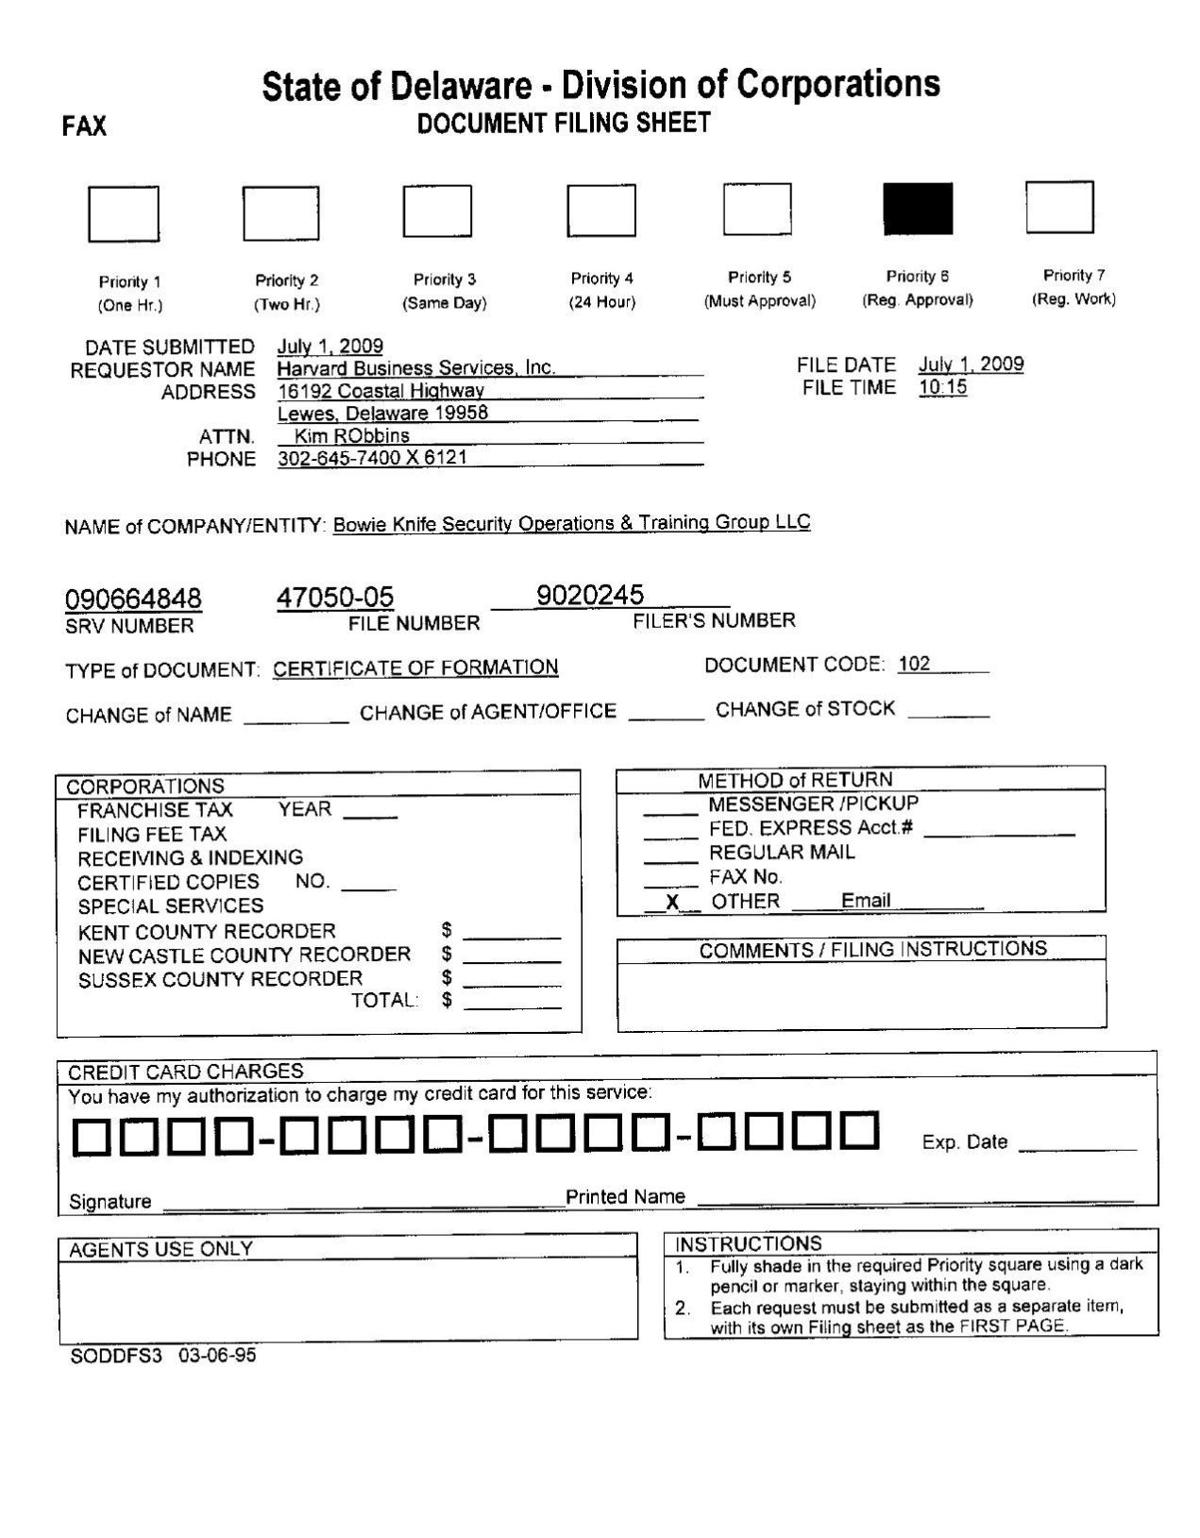 Bowie Knife Security Certificate Of Formation Online Stltoday